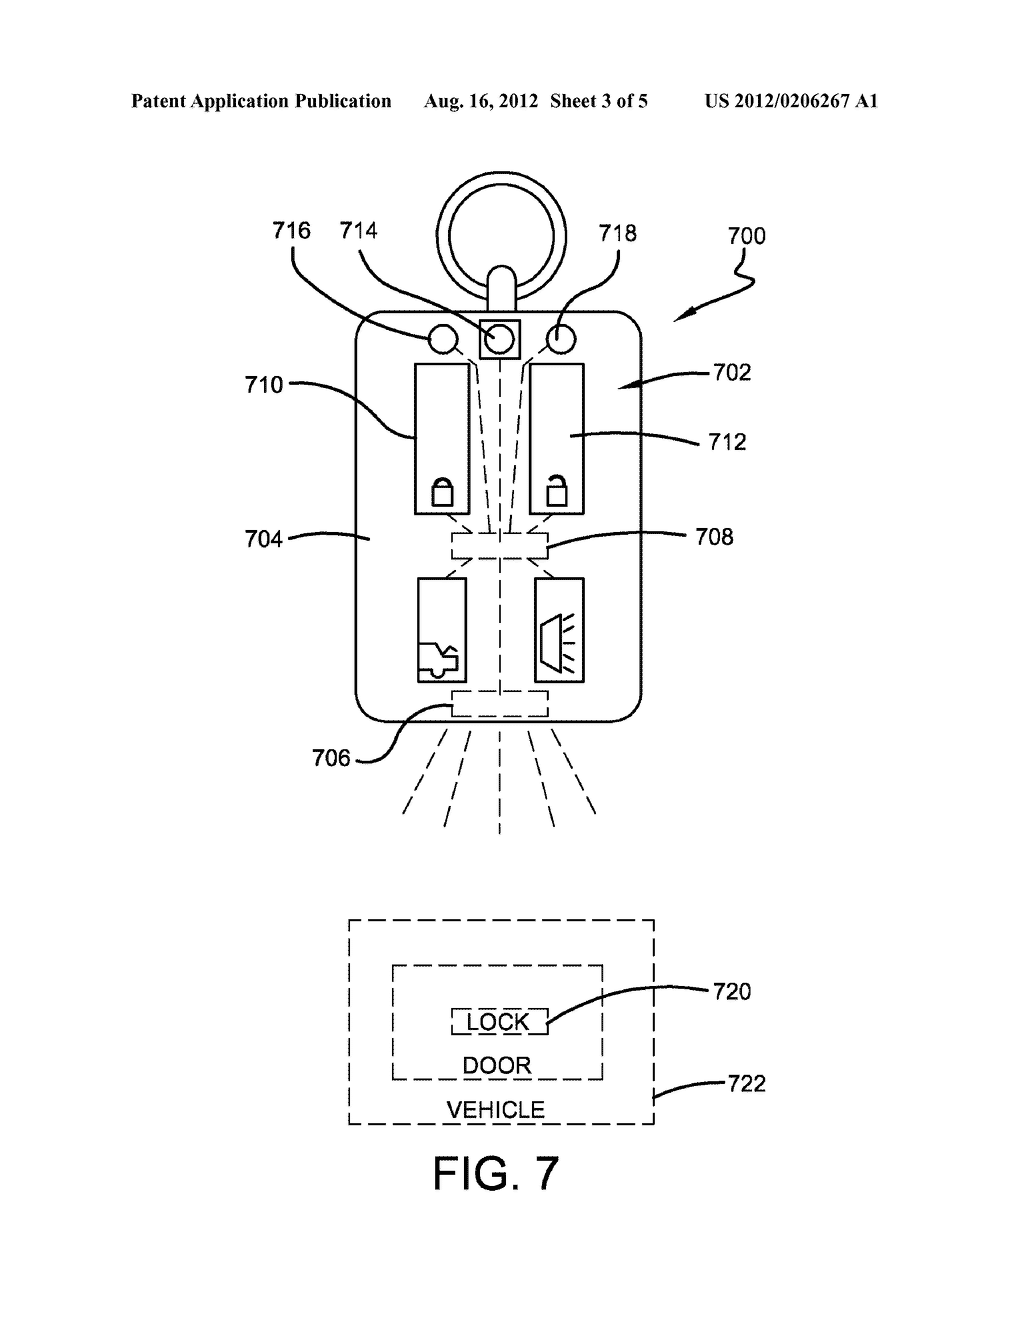 hight resolution of key fob indicator apparatus diagram schematic and image 04 key fob repair key fob schematic